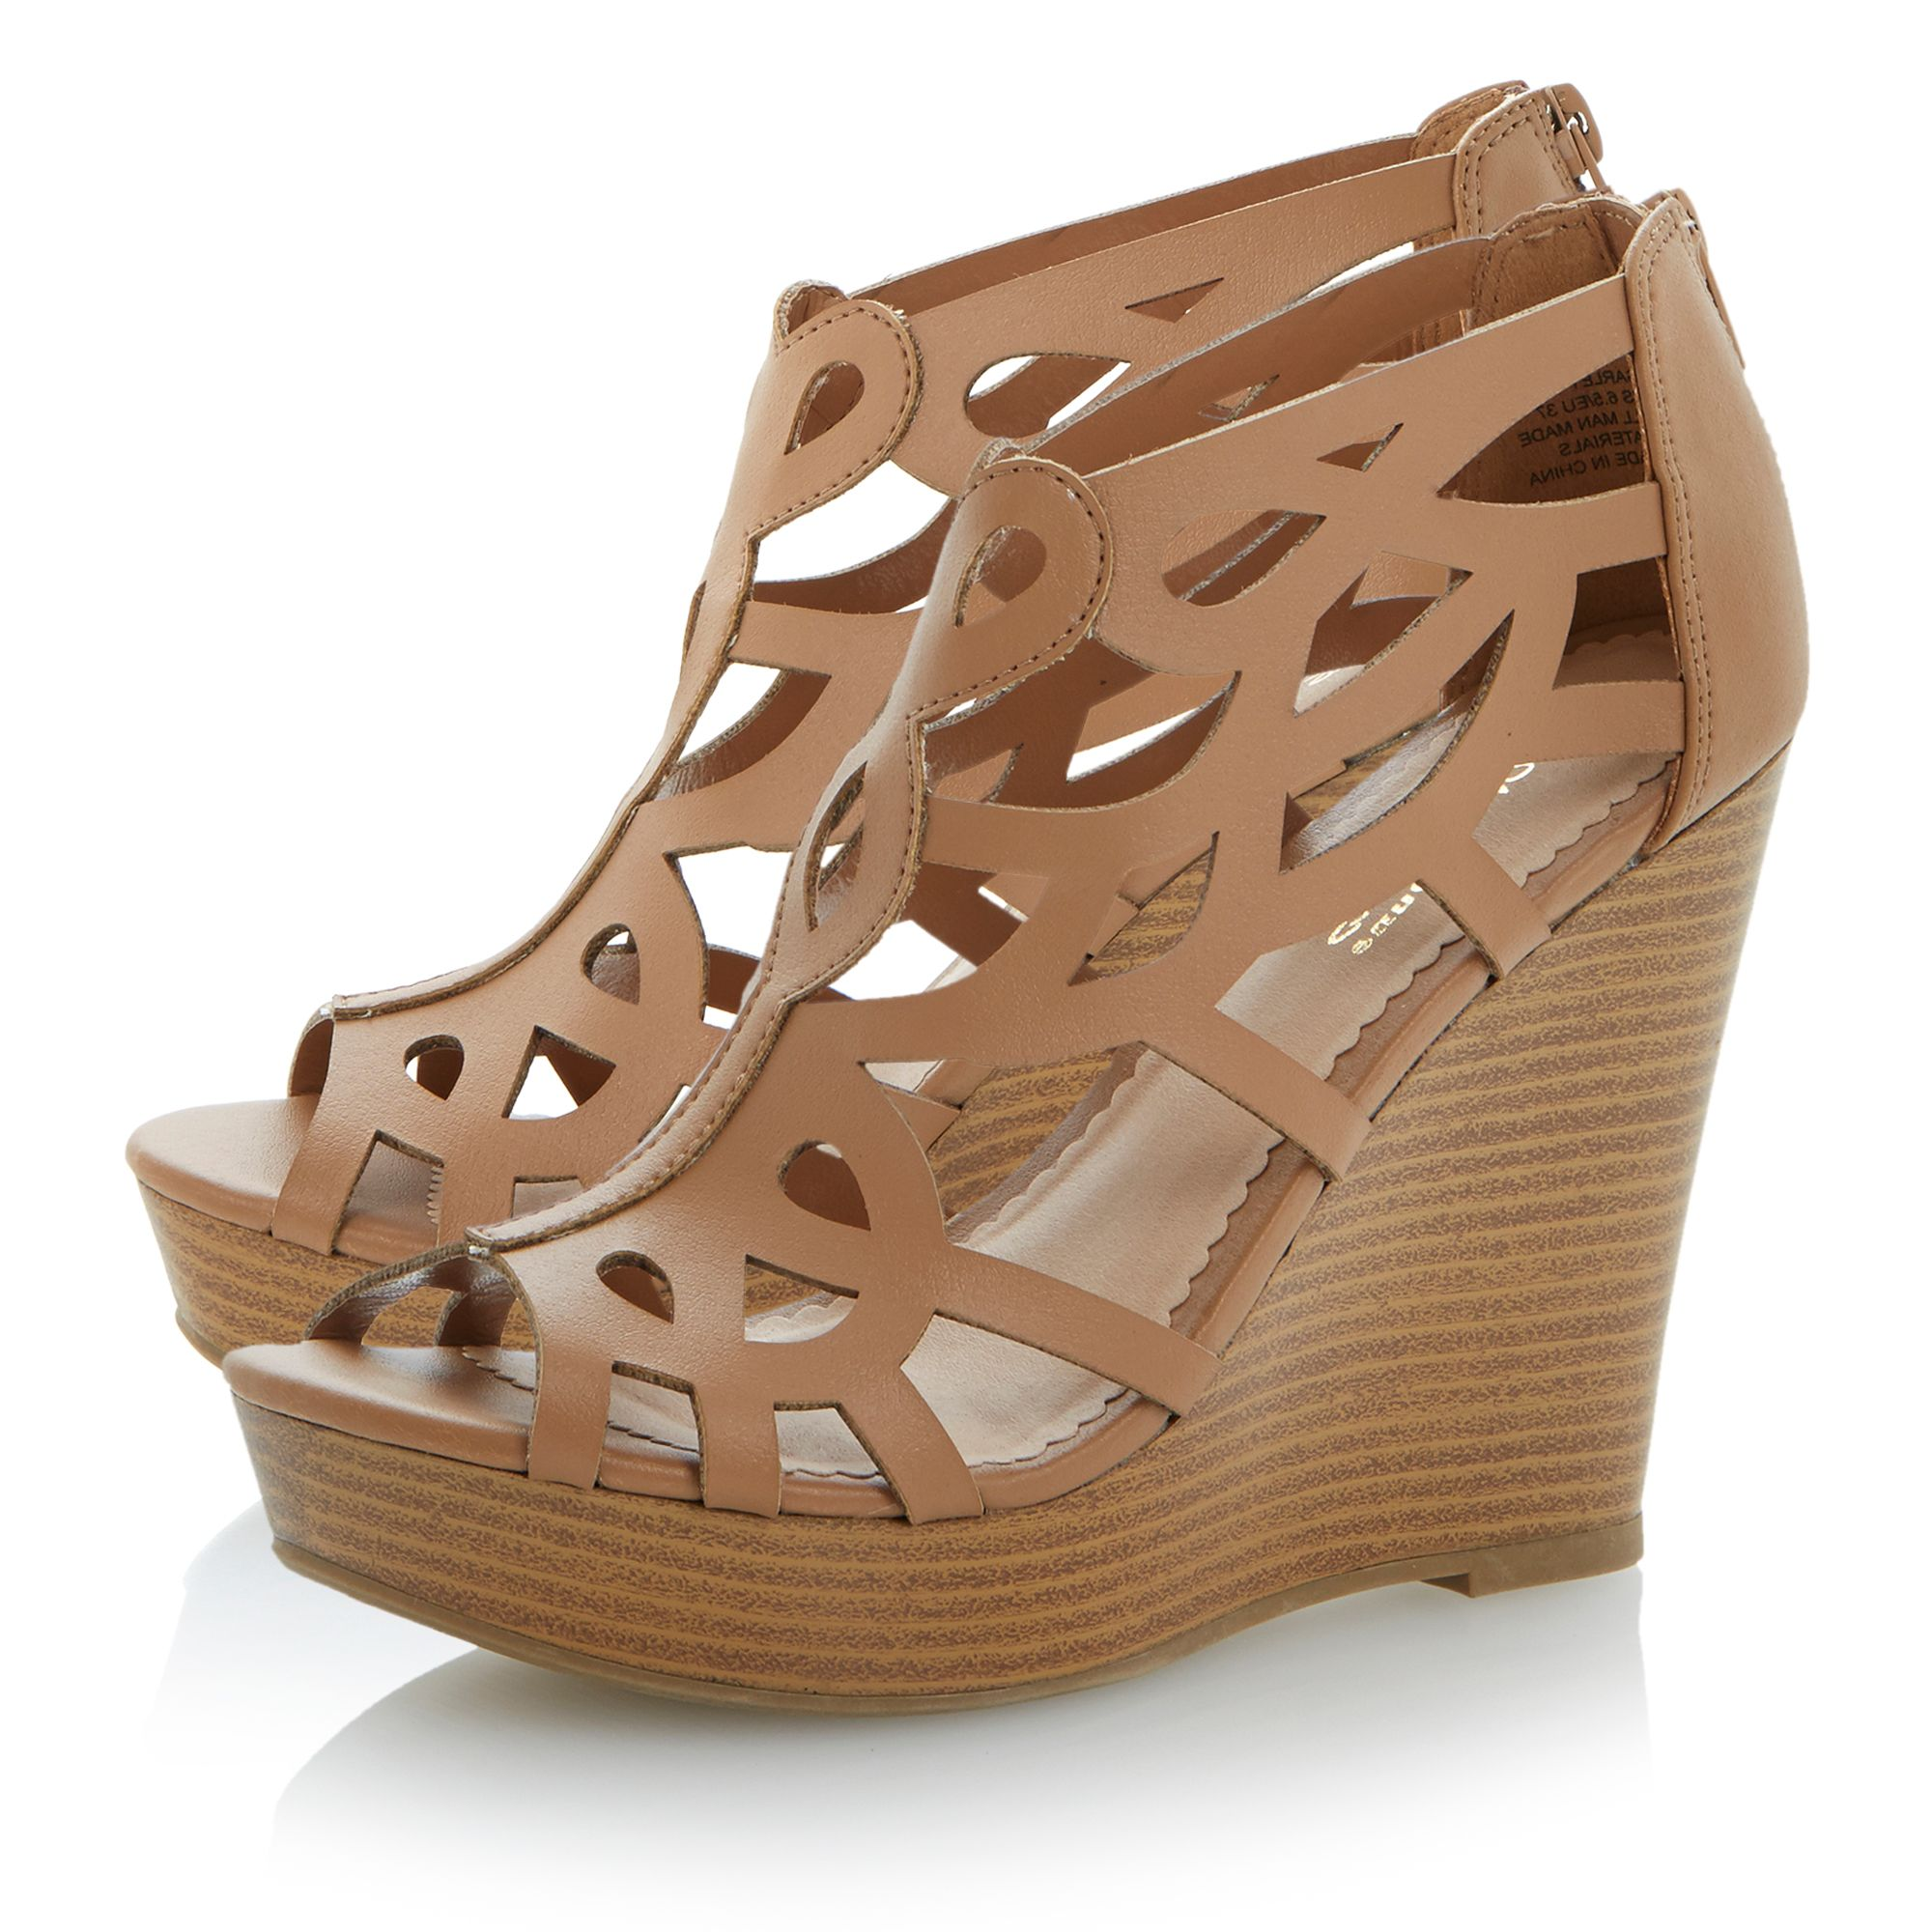 Garley wedge zip sandals